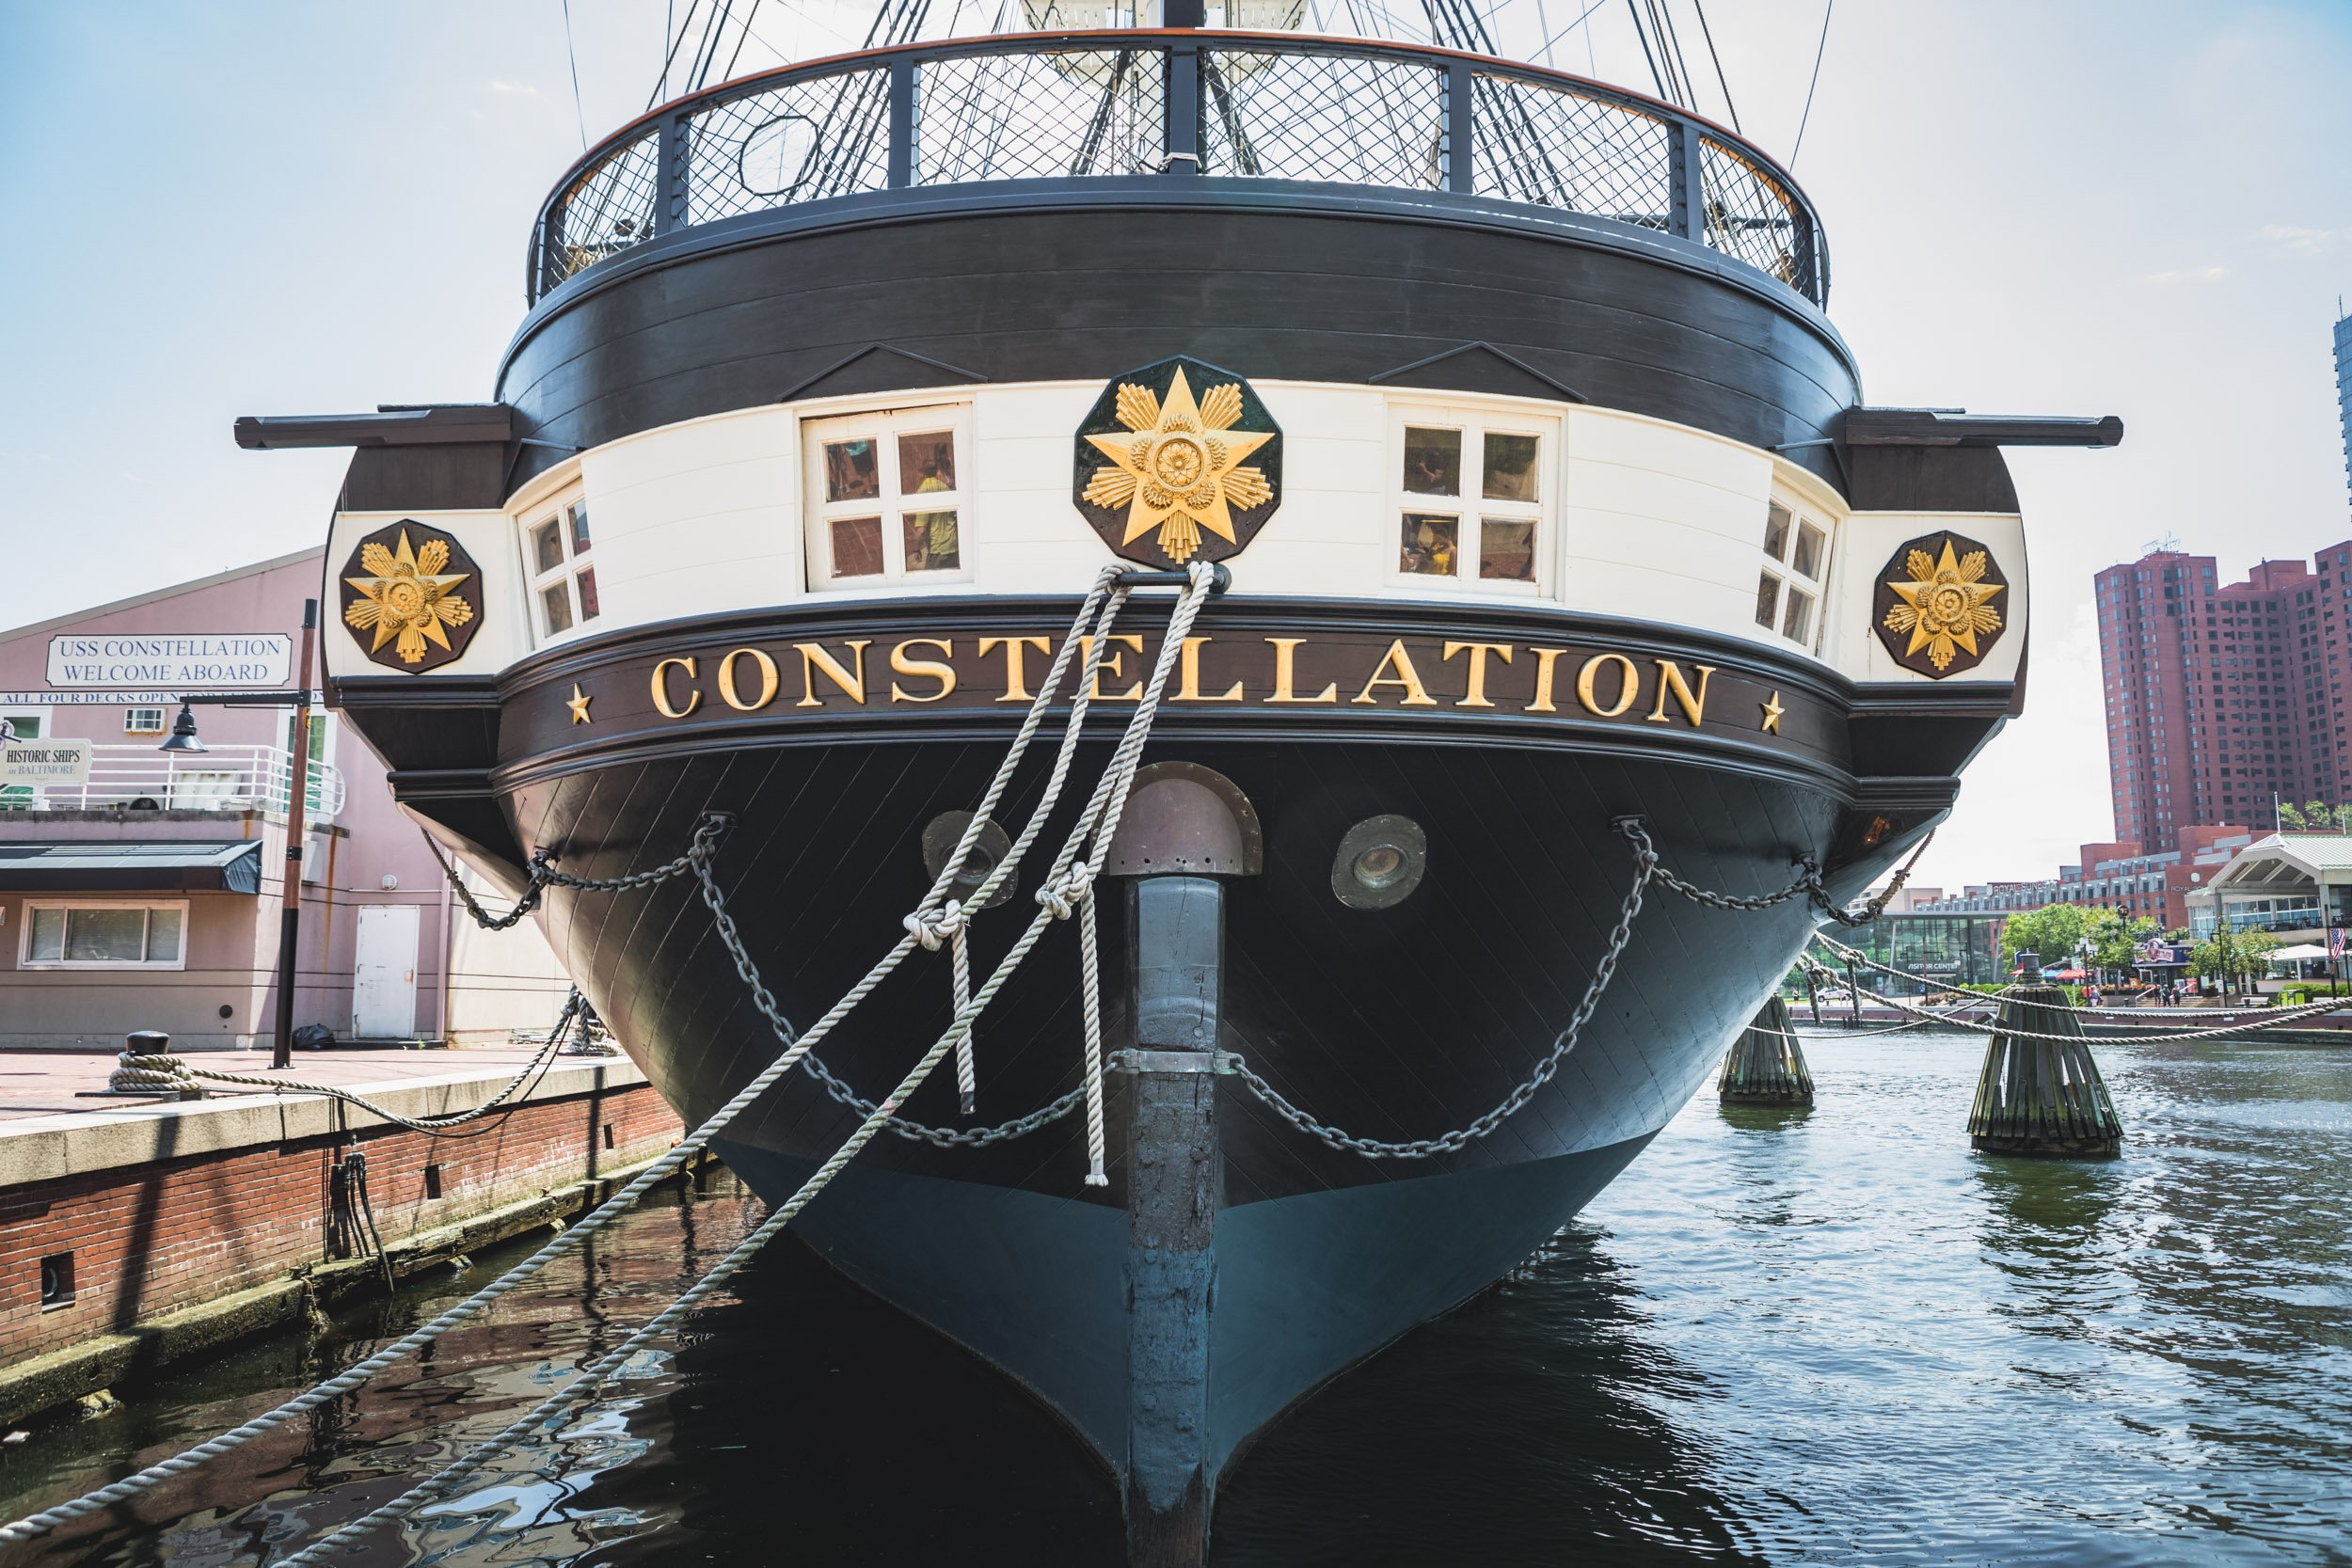 USS Constellation in Baltimore, Maryland